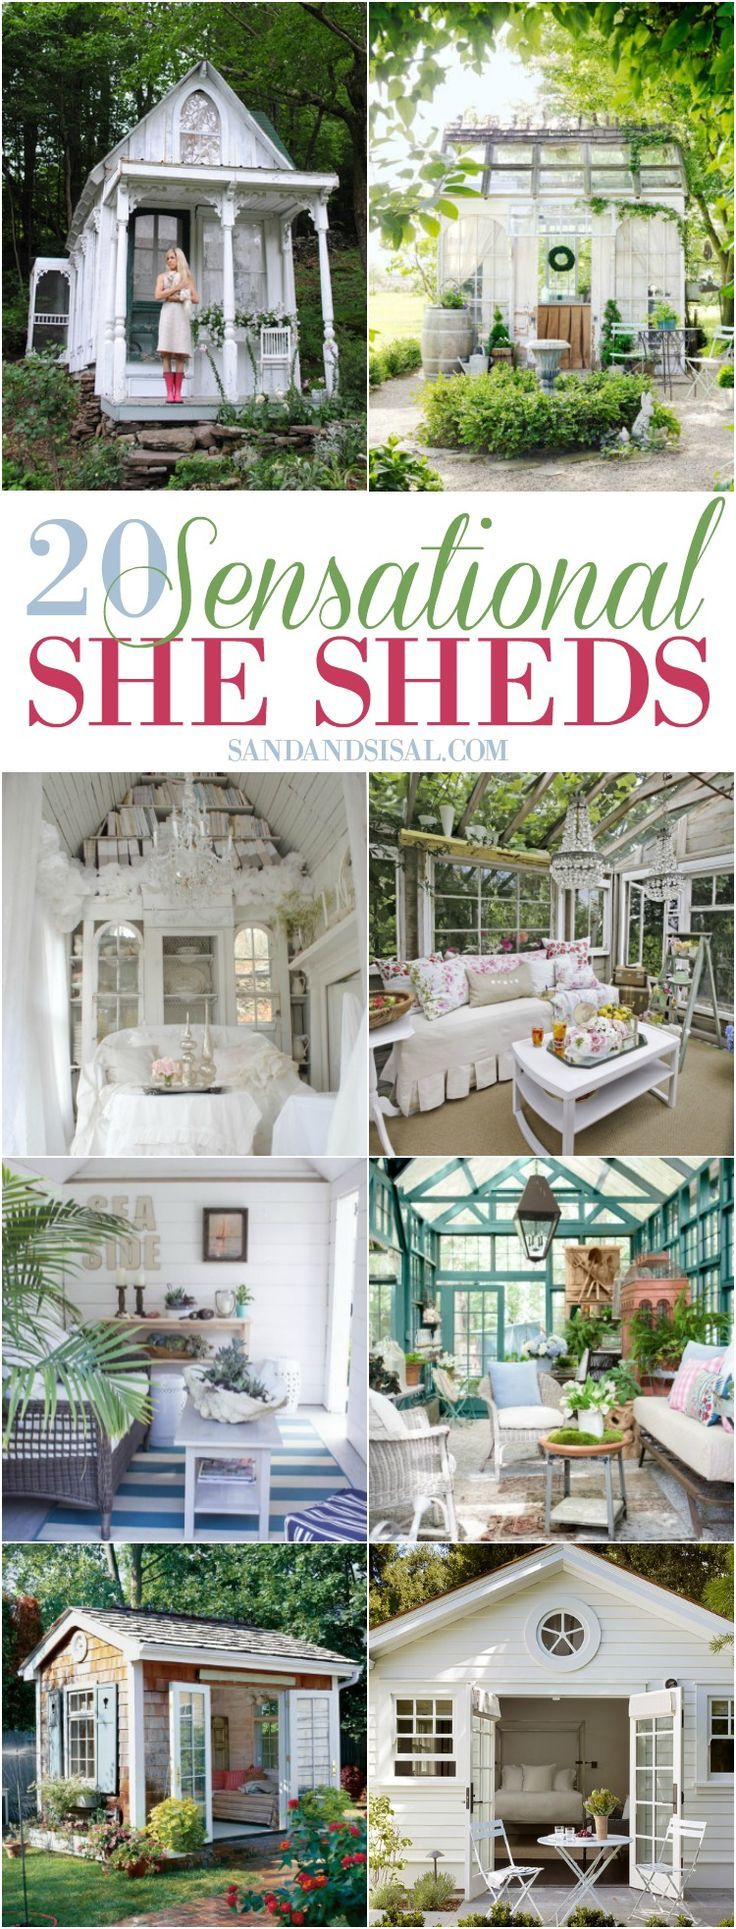 Choosing the paint colour for any direction room angela bunt - 20 Sensational She Shed Ideas